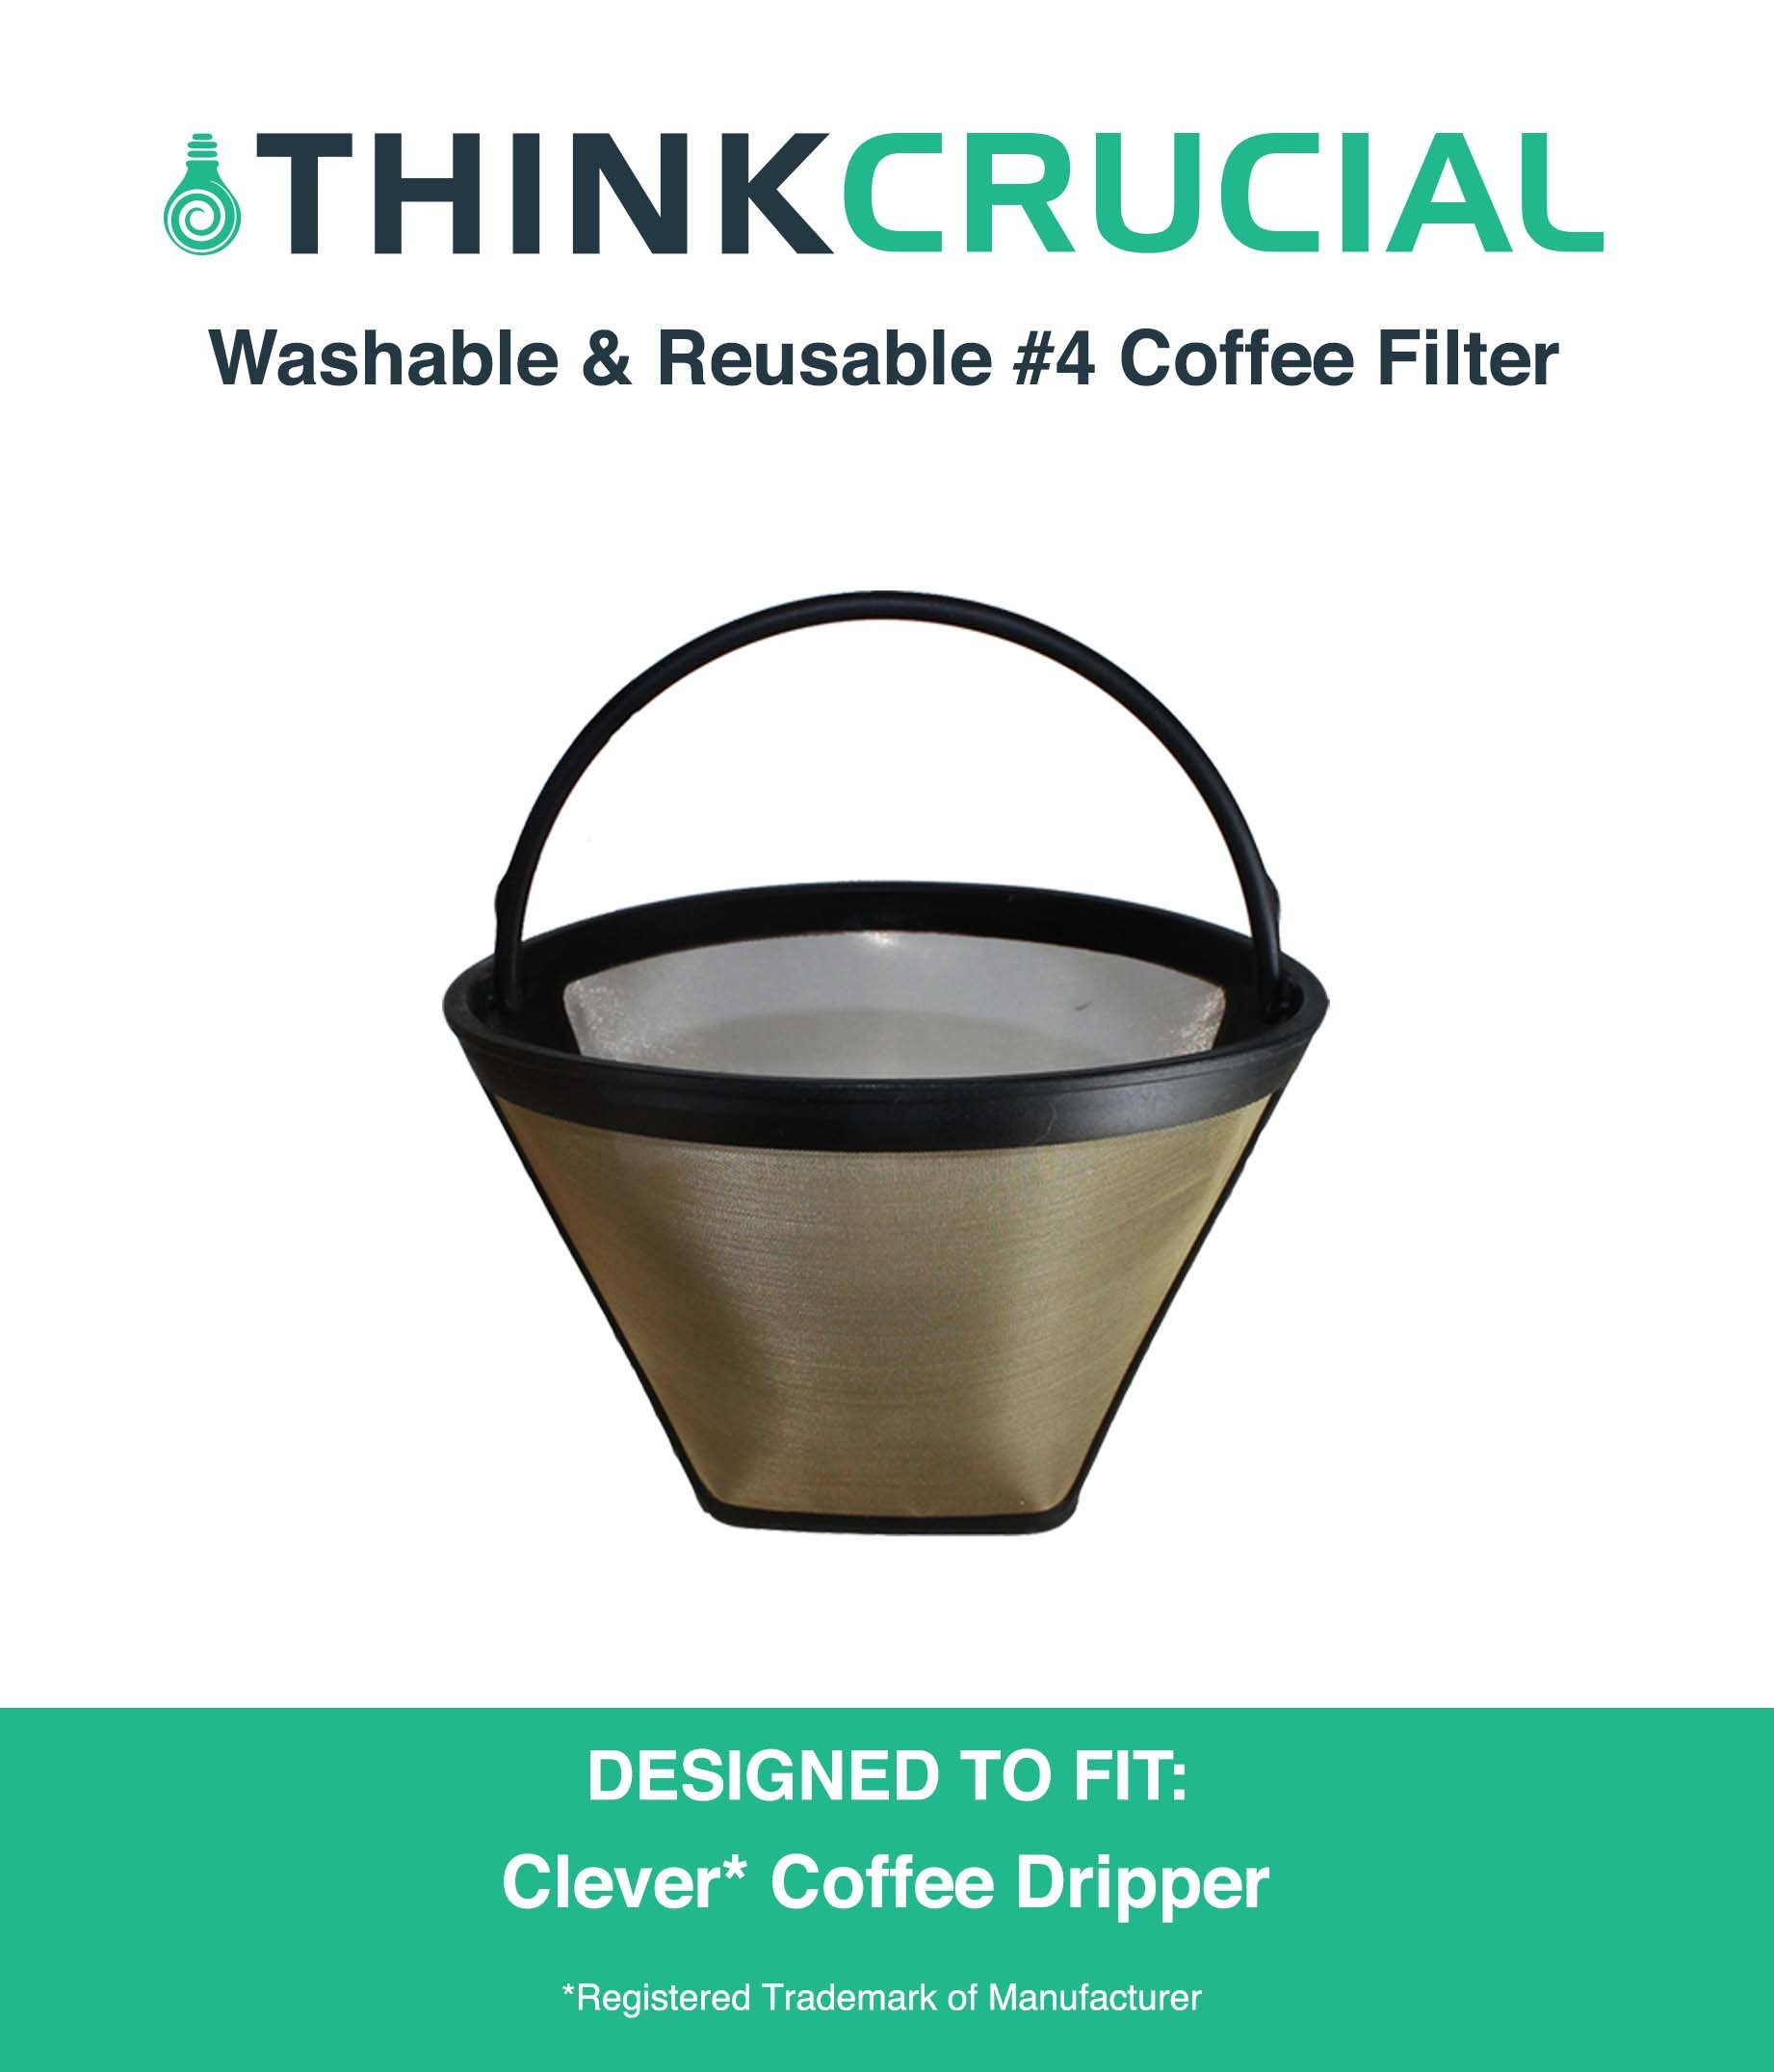 Think Crucial Washable & Reusable Cone Coffee Filter, Fits Clever Coffee Drippers